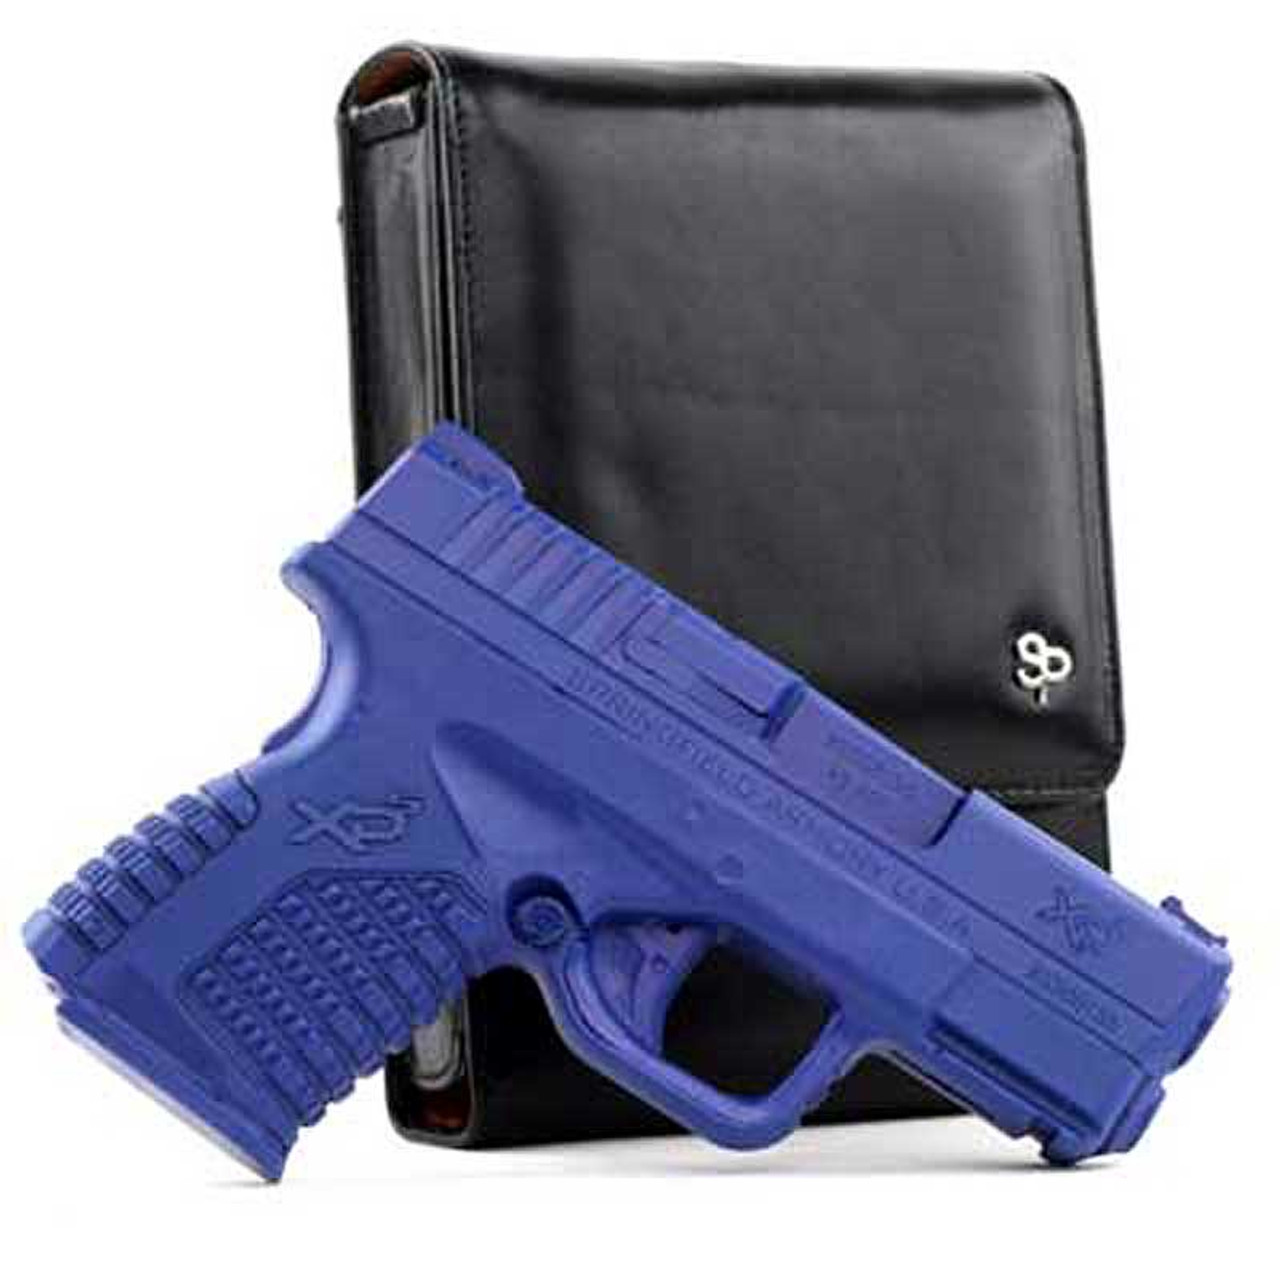 Springfield XDS 9mm Holster